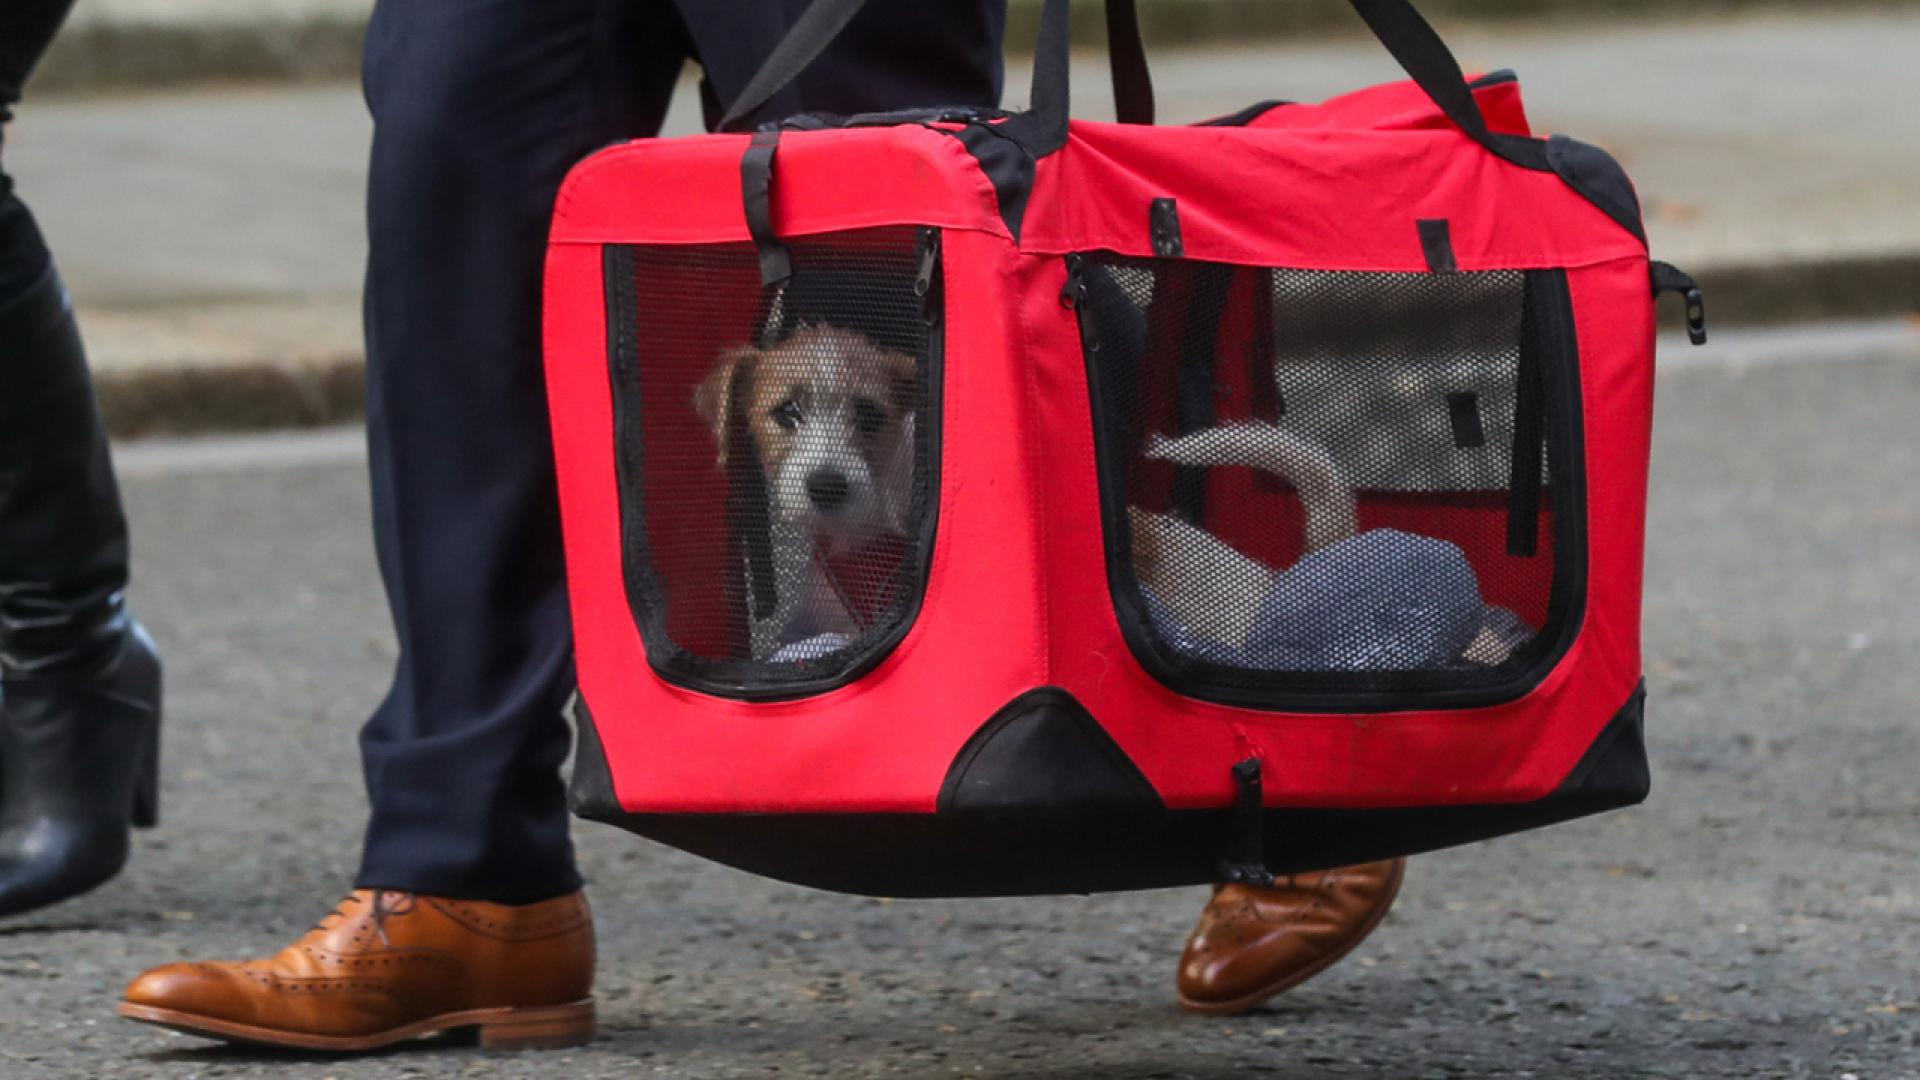 Dilyn the dog goes to No. 10